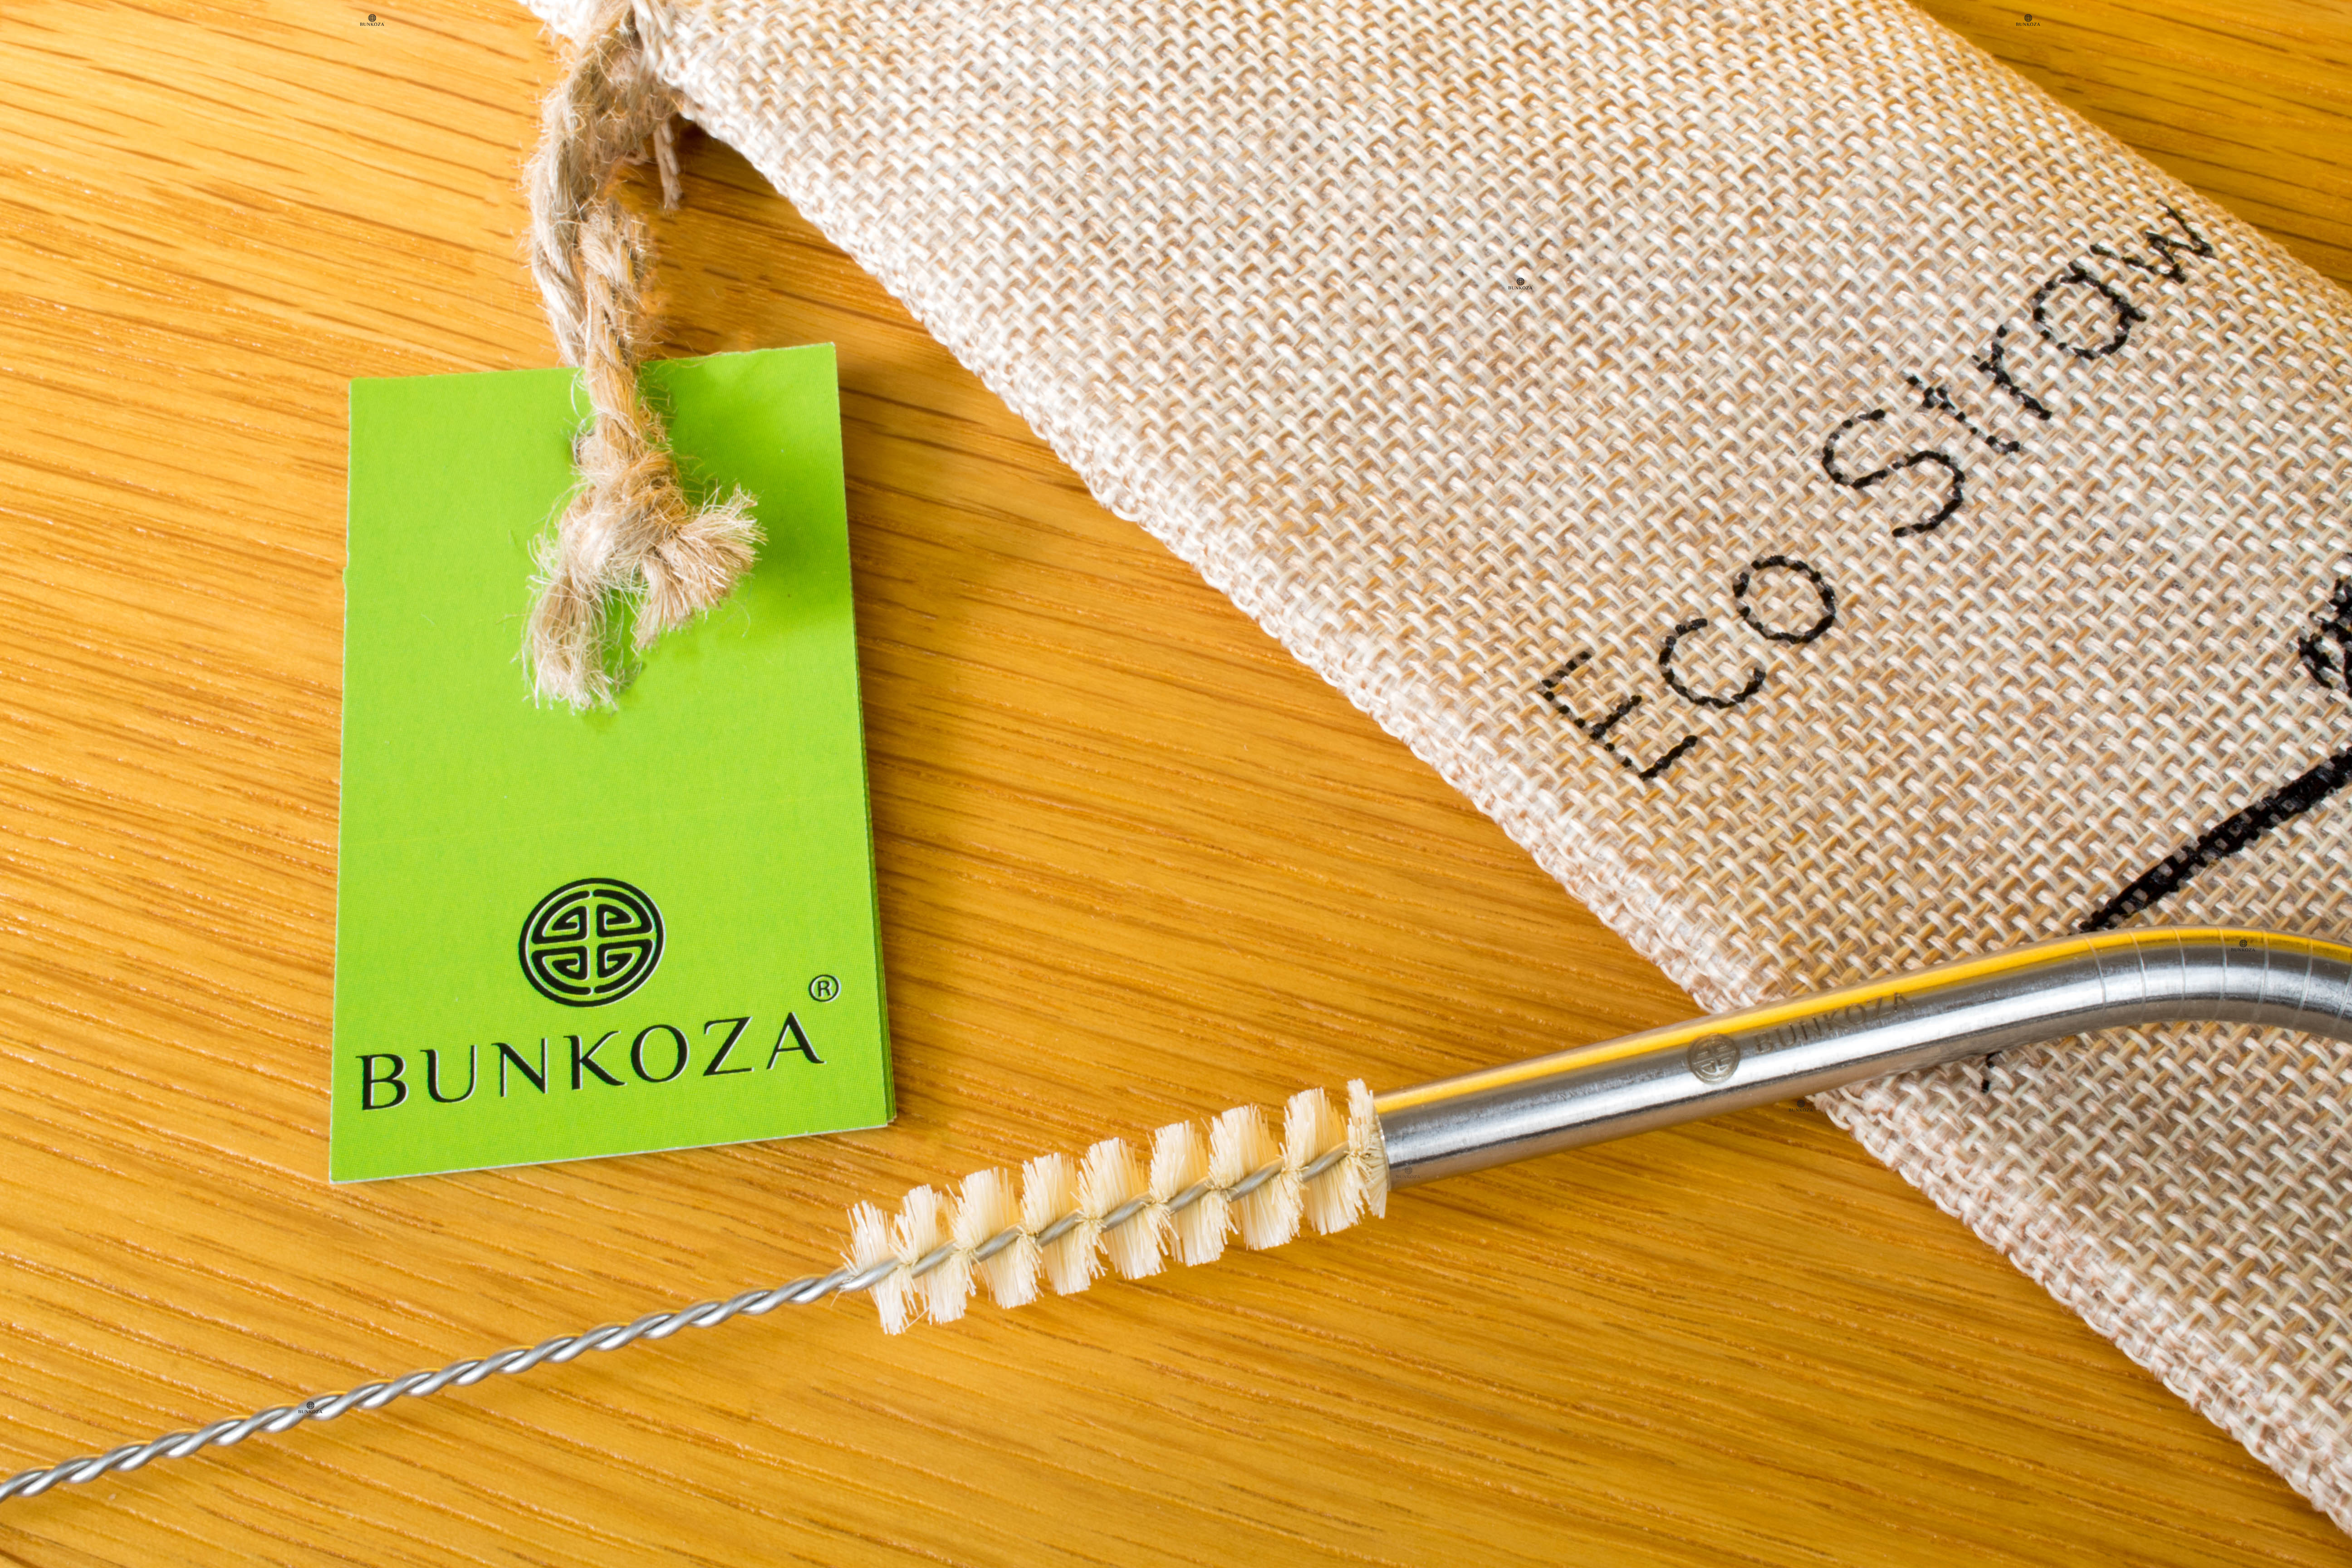 Bunkoza® Eco Straws Classic - Stainless Steel Drinking Straw + Eco Jute  Pouch + Eco Sisal Universal Cleaner - 8 pack